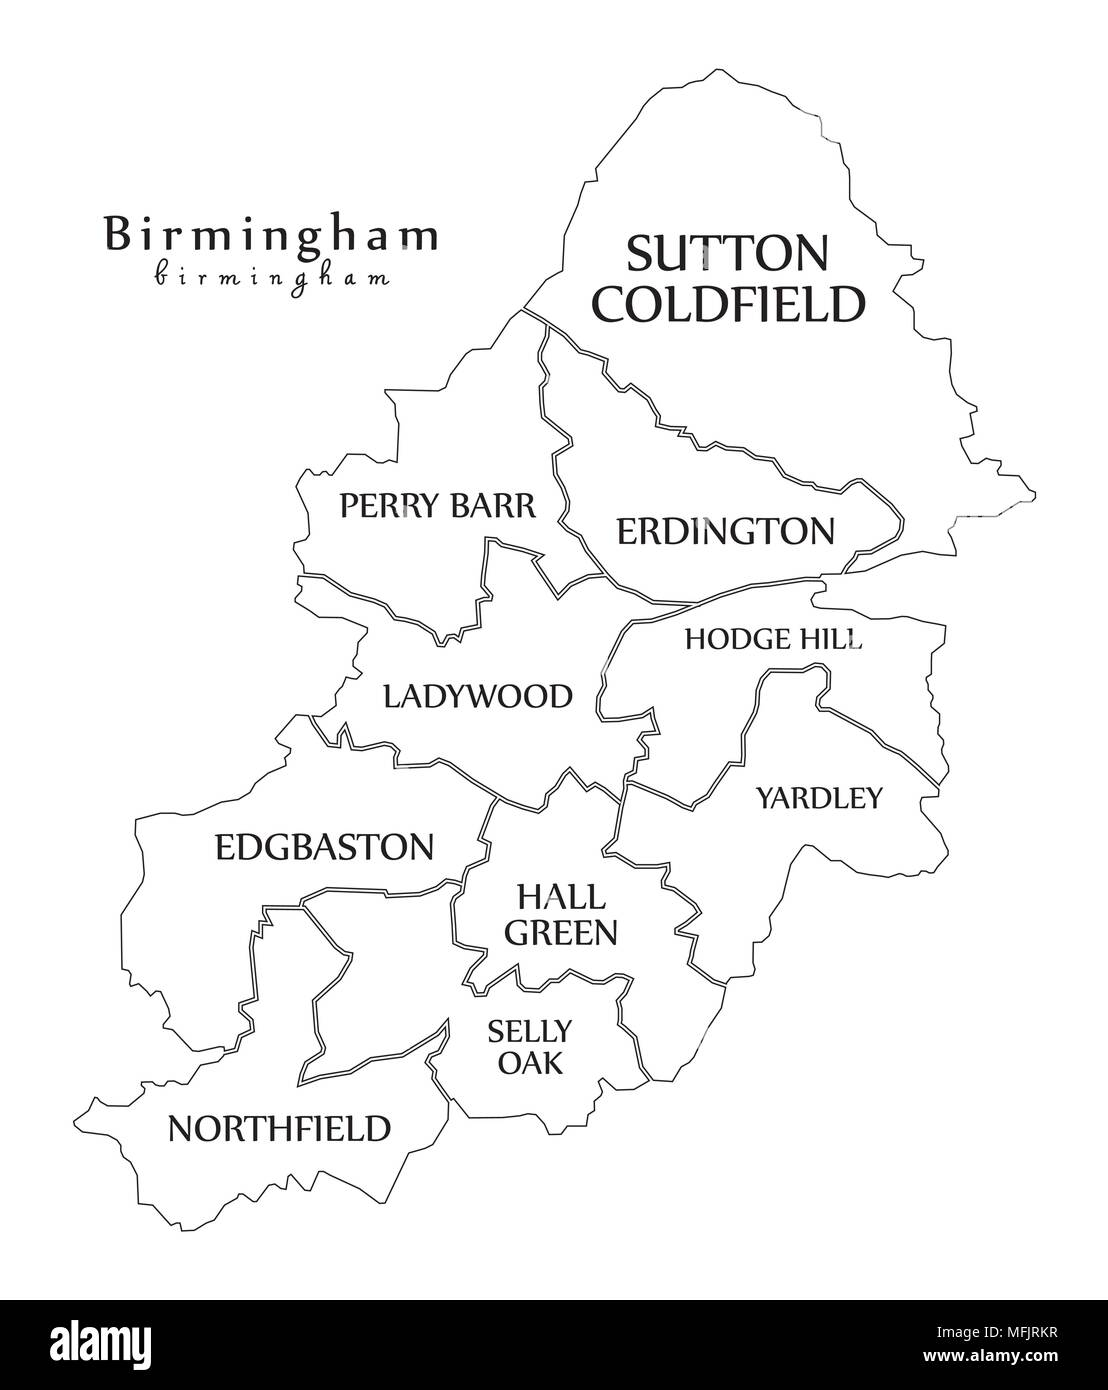 Map Of Birmingham England.Modern City Map Birmingham City Of England With Boroughs And